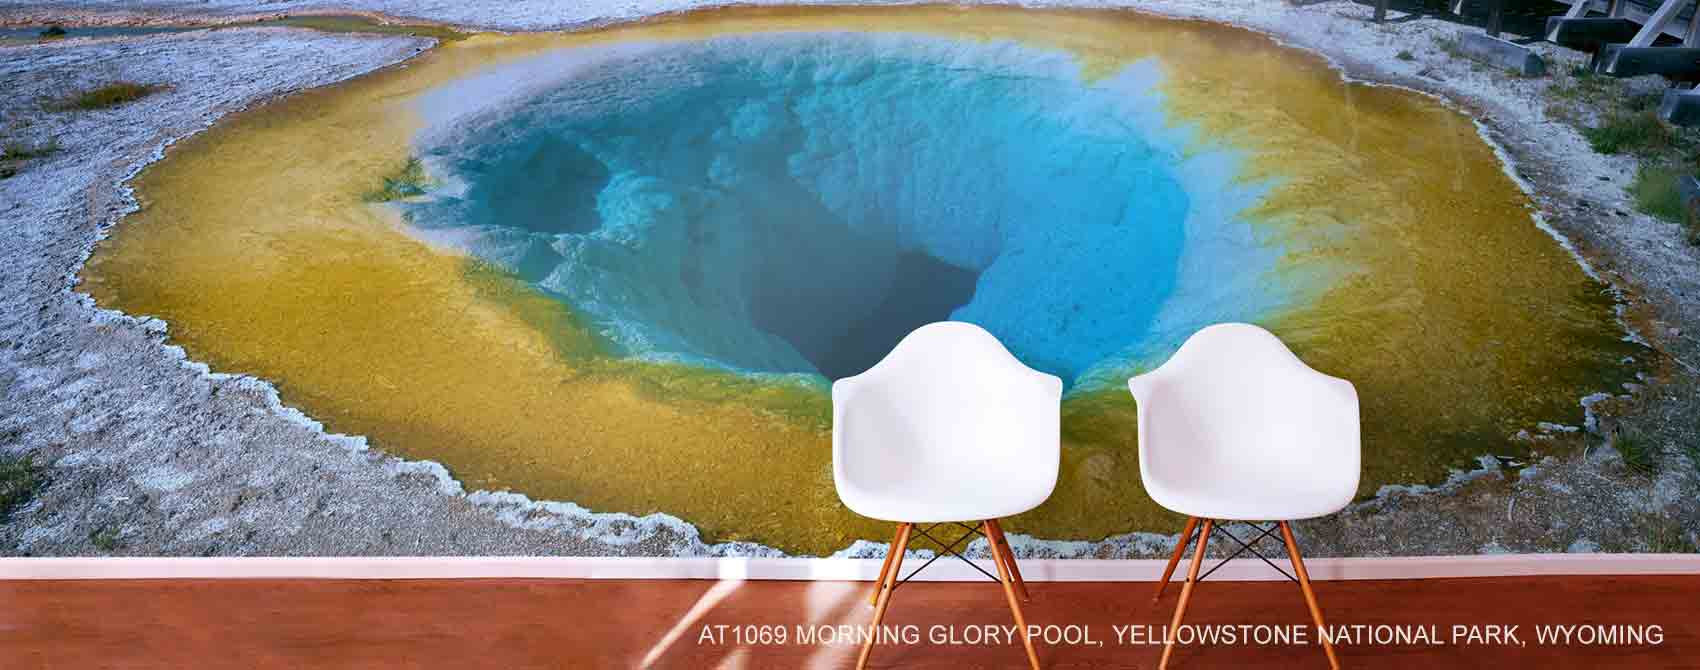 Morning Glory Pool, Yellowstone National Park, Wyoming Wallpaper Mural